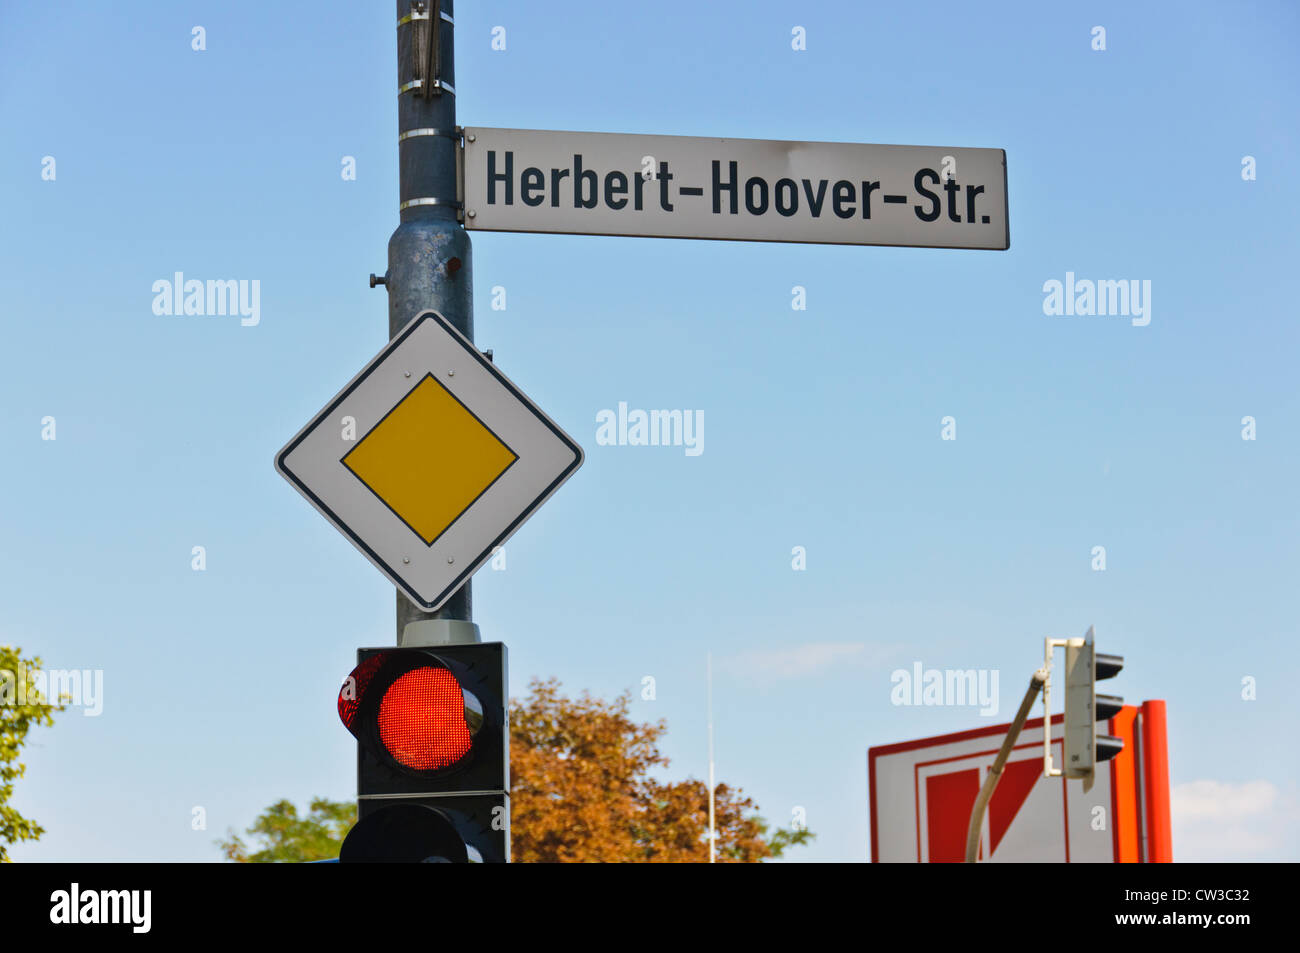 Herbert-Hoover-Str. street sign red traffic light GIVE WAY road sign yield sign - Heilbronn Germany Europe - Stock Image